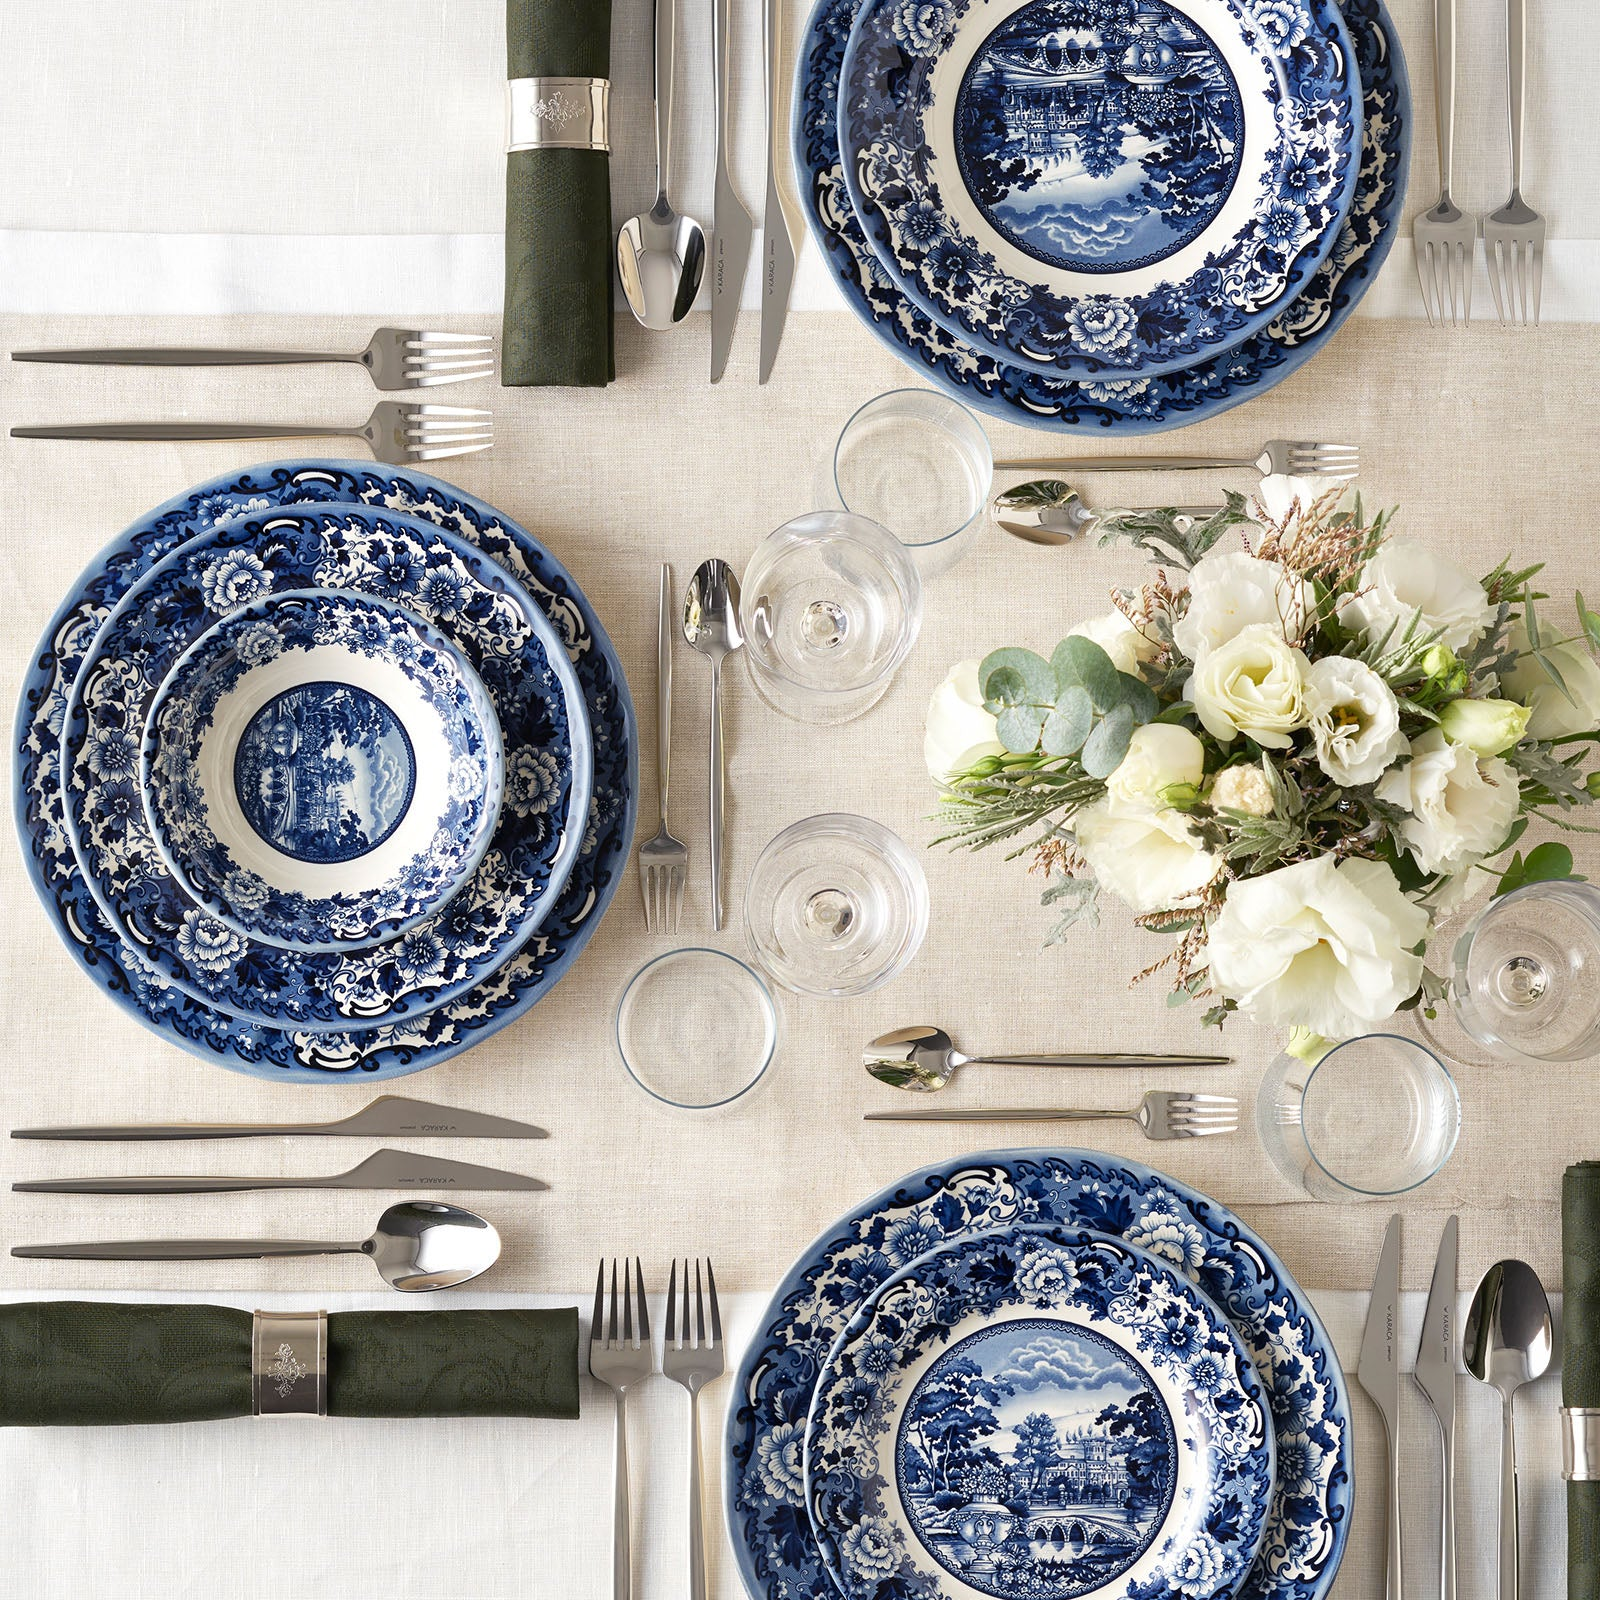 24 pieces Blue Odyssey 6 Person Dinner Set 153.03.05.0037 -  طقم عشاء 24 قطعة بلو اوديسي 6 اشخاص - Shop Online Furniture and Home Decor Store in Dubai, UAE at ebarza